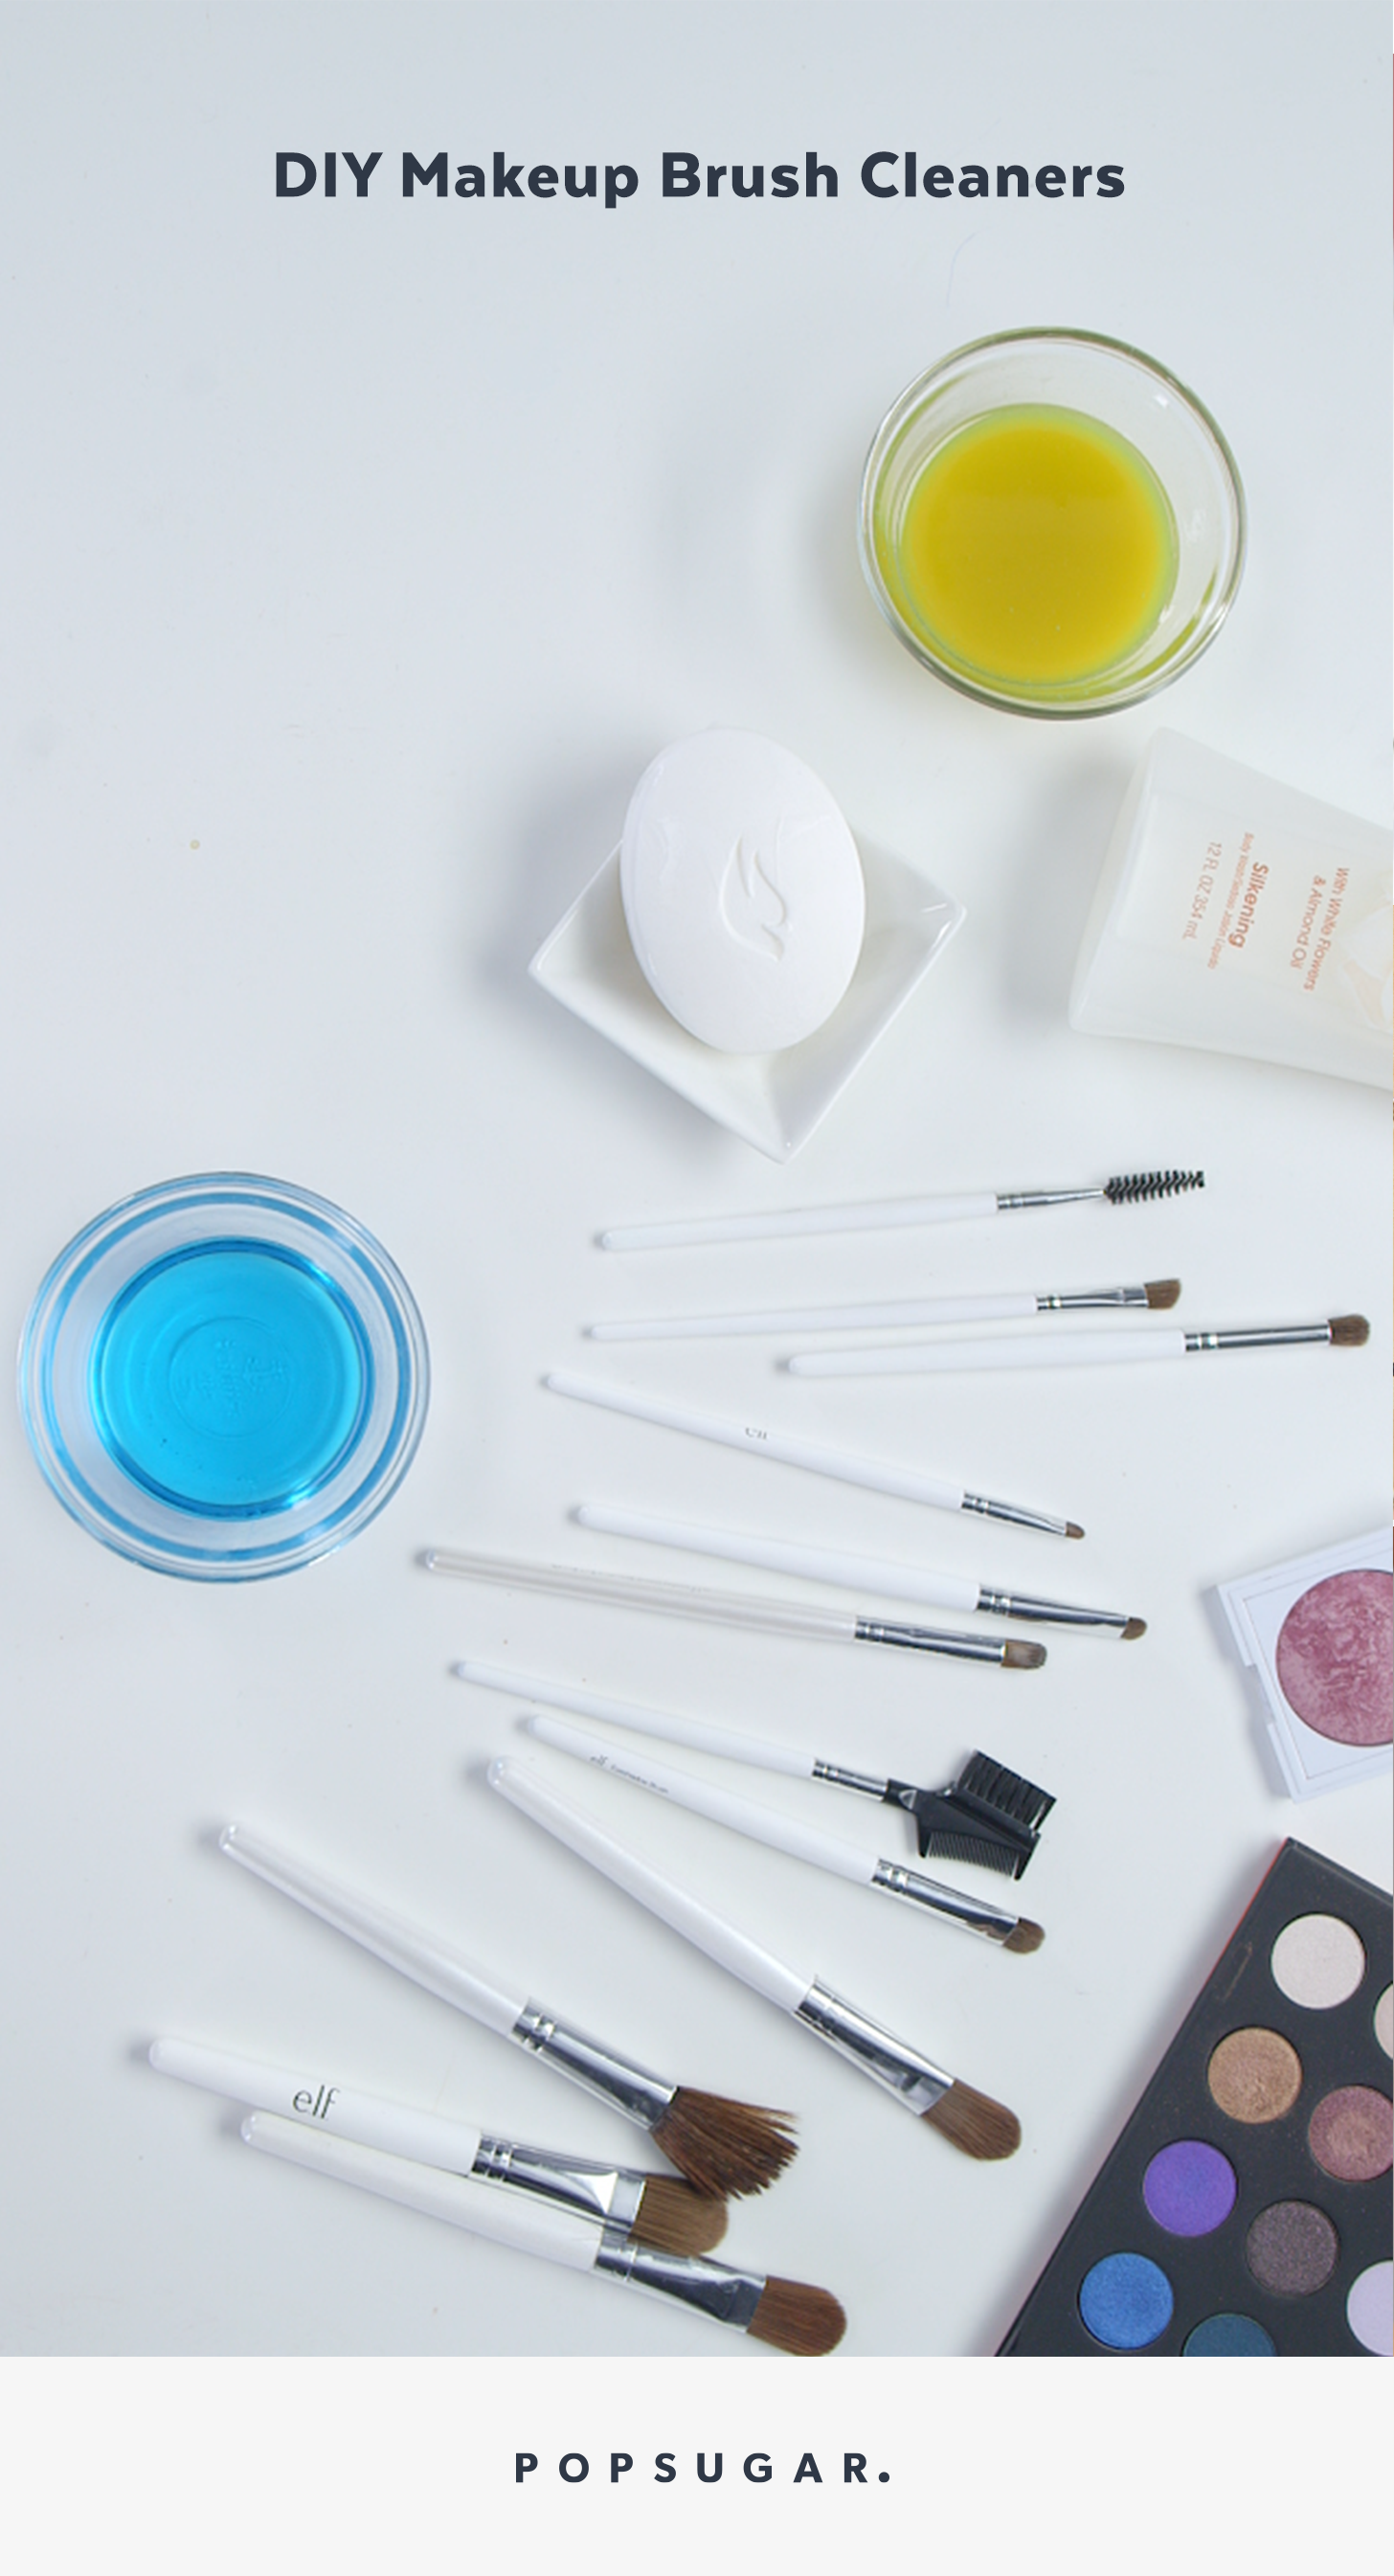 Here S Three Easy Ways To Clean Your Makeup Brushes At Home In The Most Naturally And Easie Diy Makeup Brush Diy Makeup Brush Cleaner Makeup Yourself